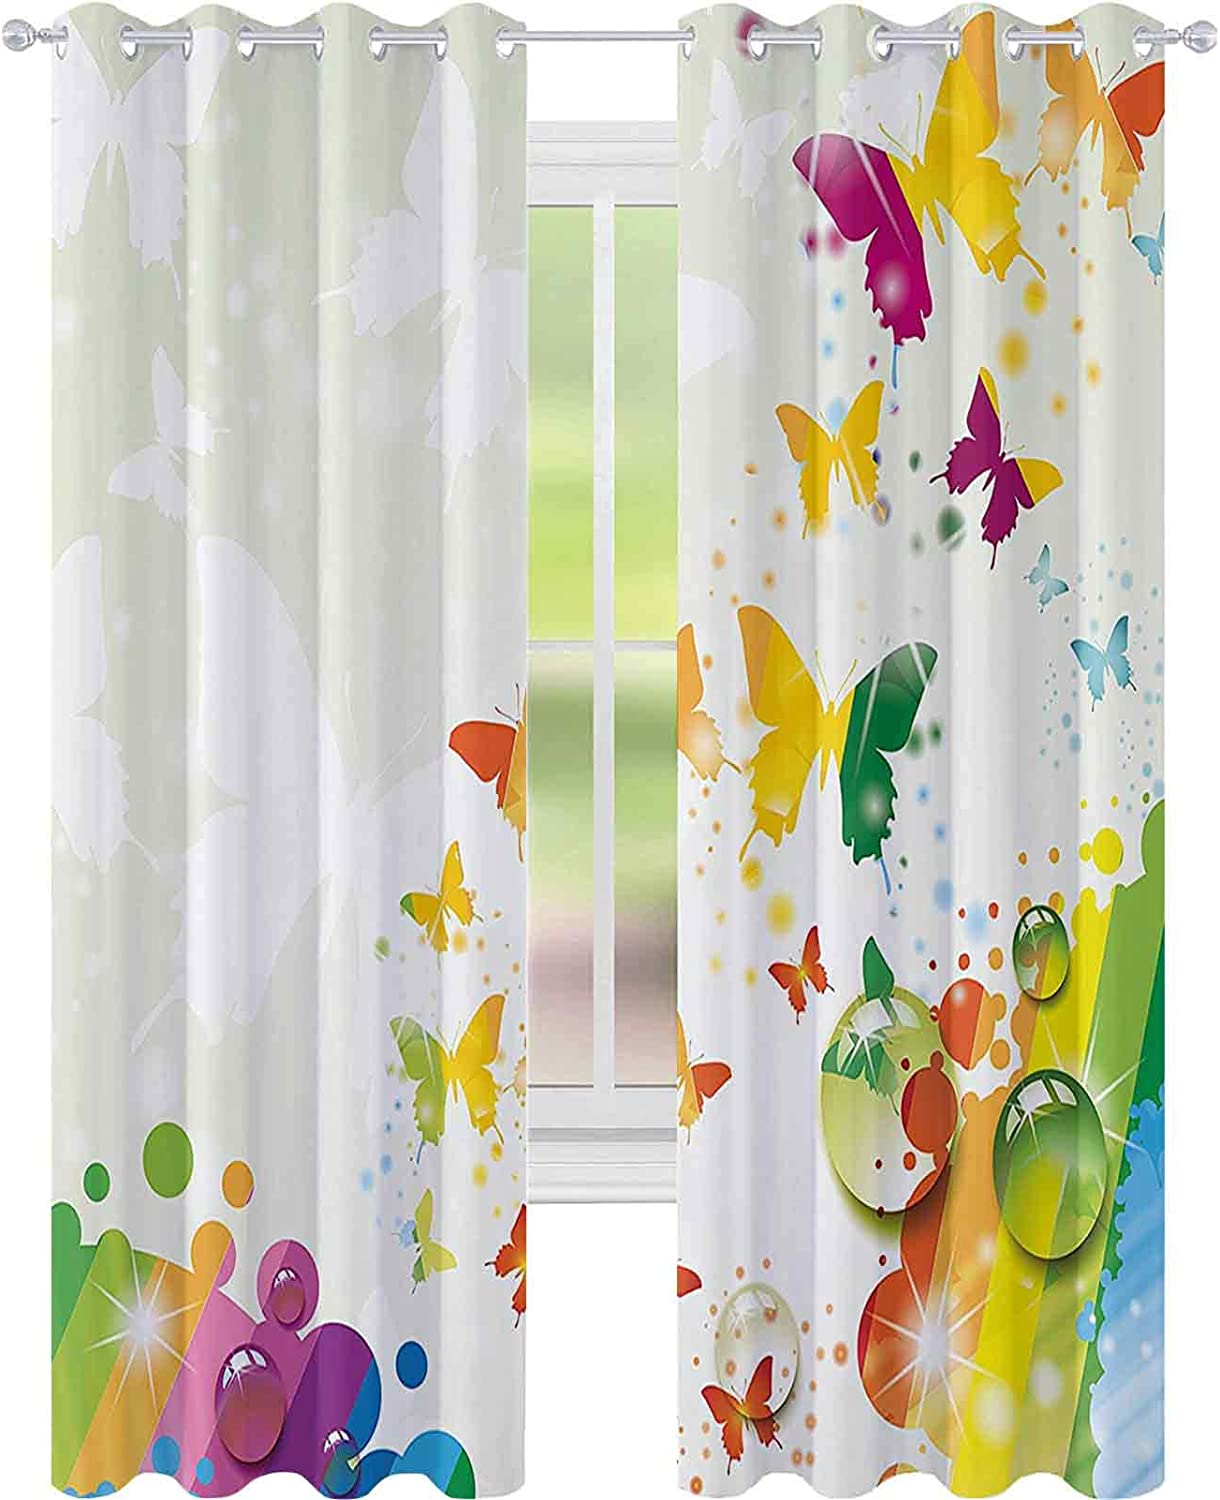 90%-99% Blackout Lining Curtain Free Silhouettes online shop of SALENEW very popular Butterflies